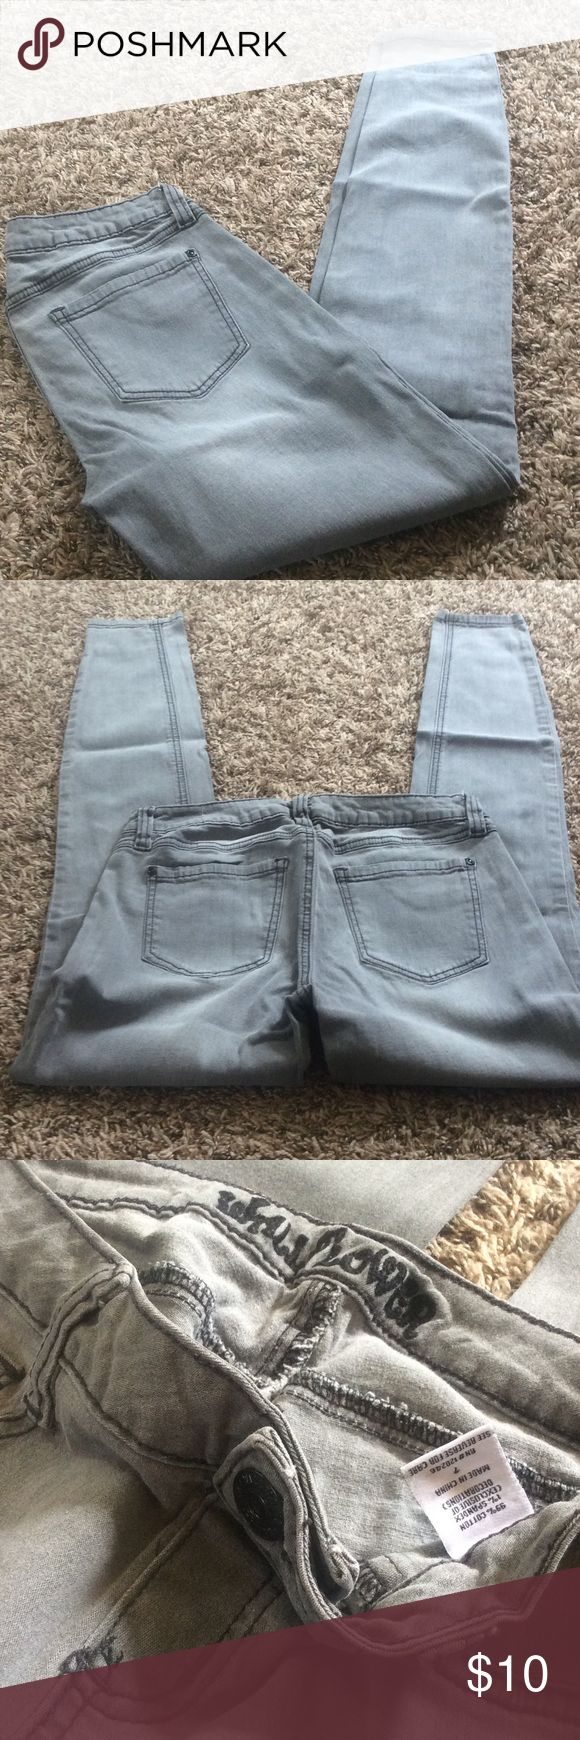 Gray Wallflower skinny jeans Gray with black stitching skinny jeans. Stretchy. 99% cotton. Excellent condition. No signs of wear or stains. Bundle for further discounts! Wallflower Jeans Skinny